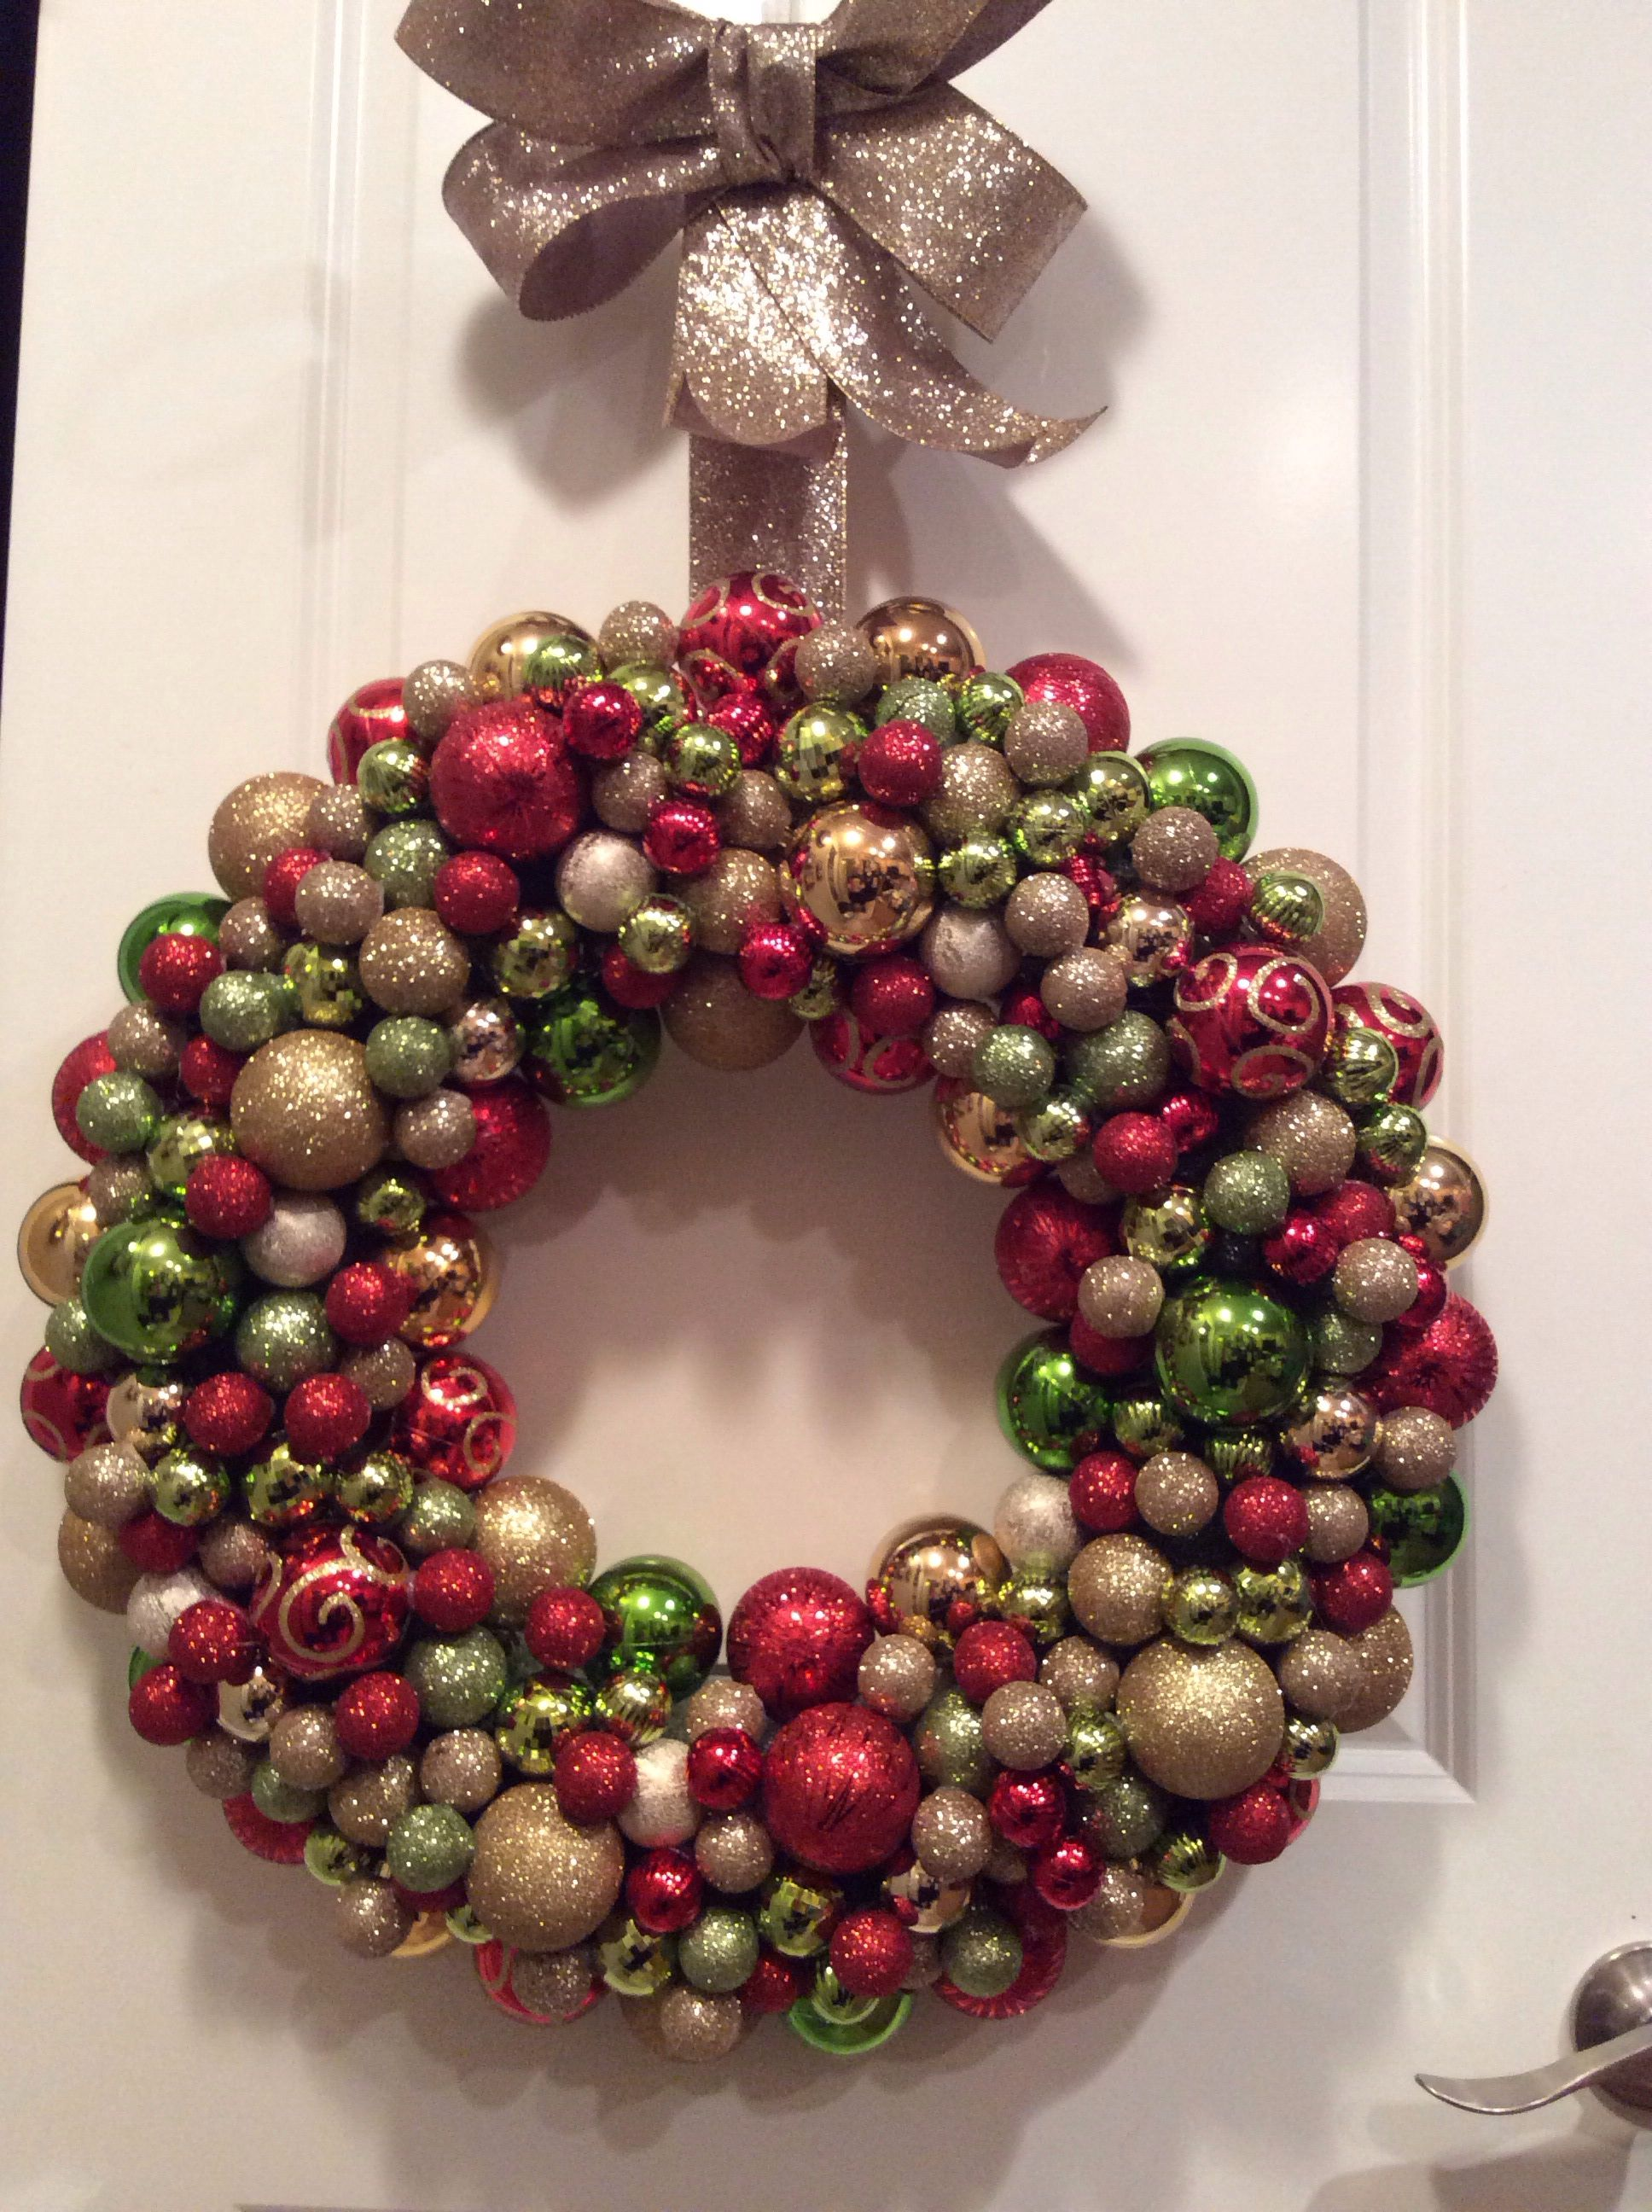 diy ornament wreath all accessories from hobby lobby - Hobby Lobby Christmas Wreaths